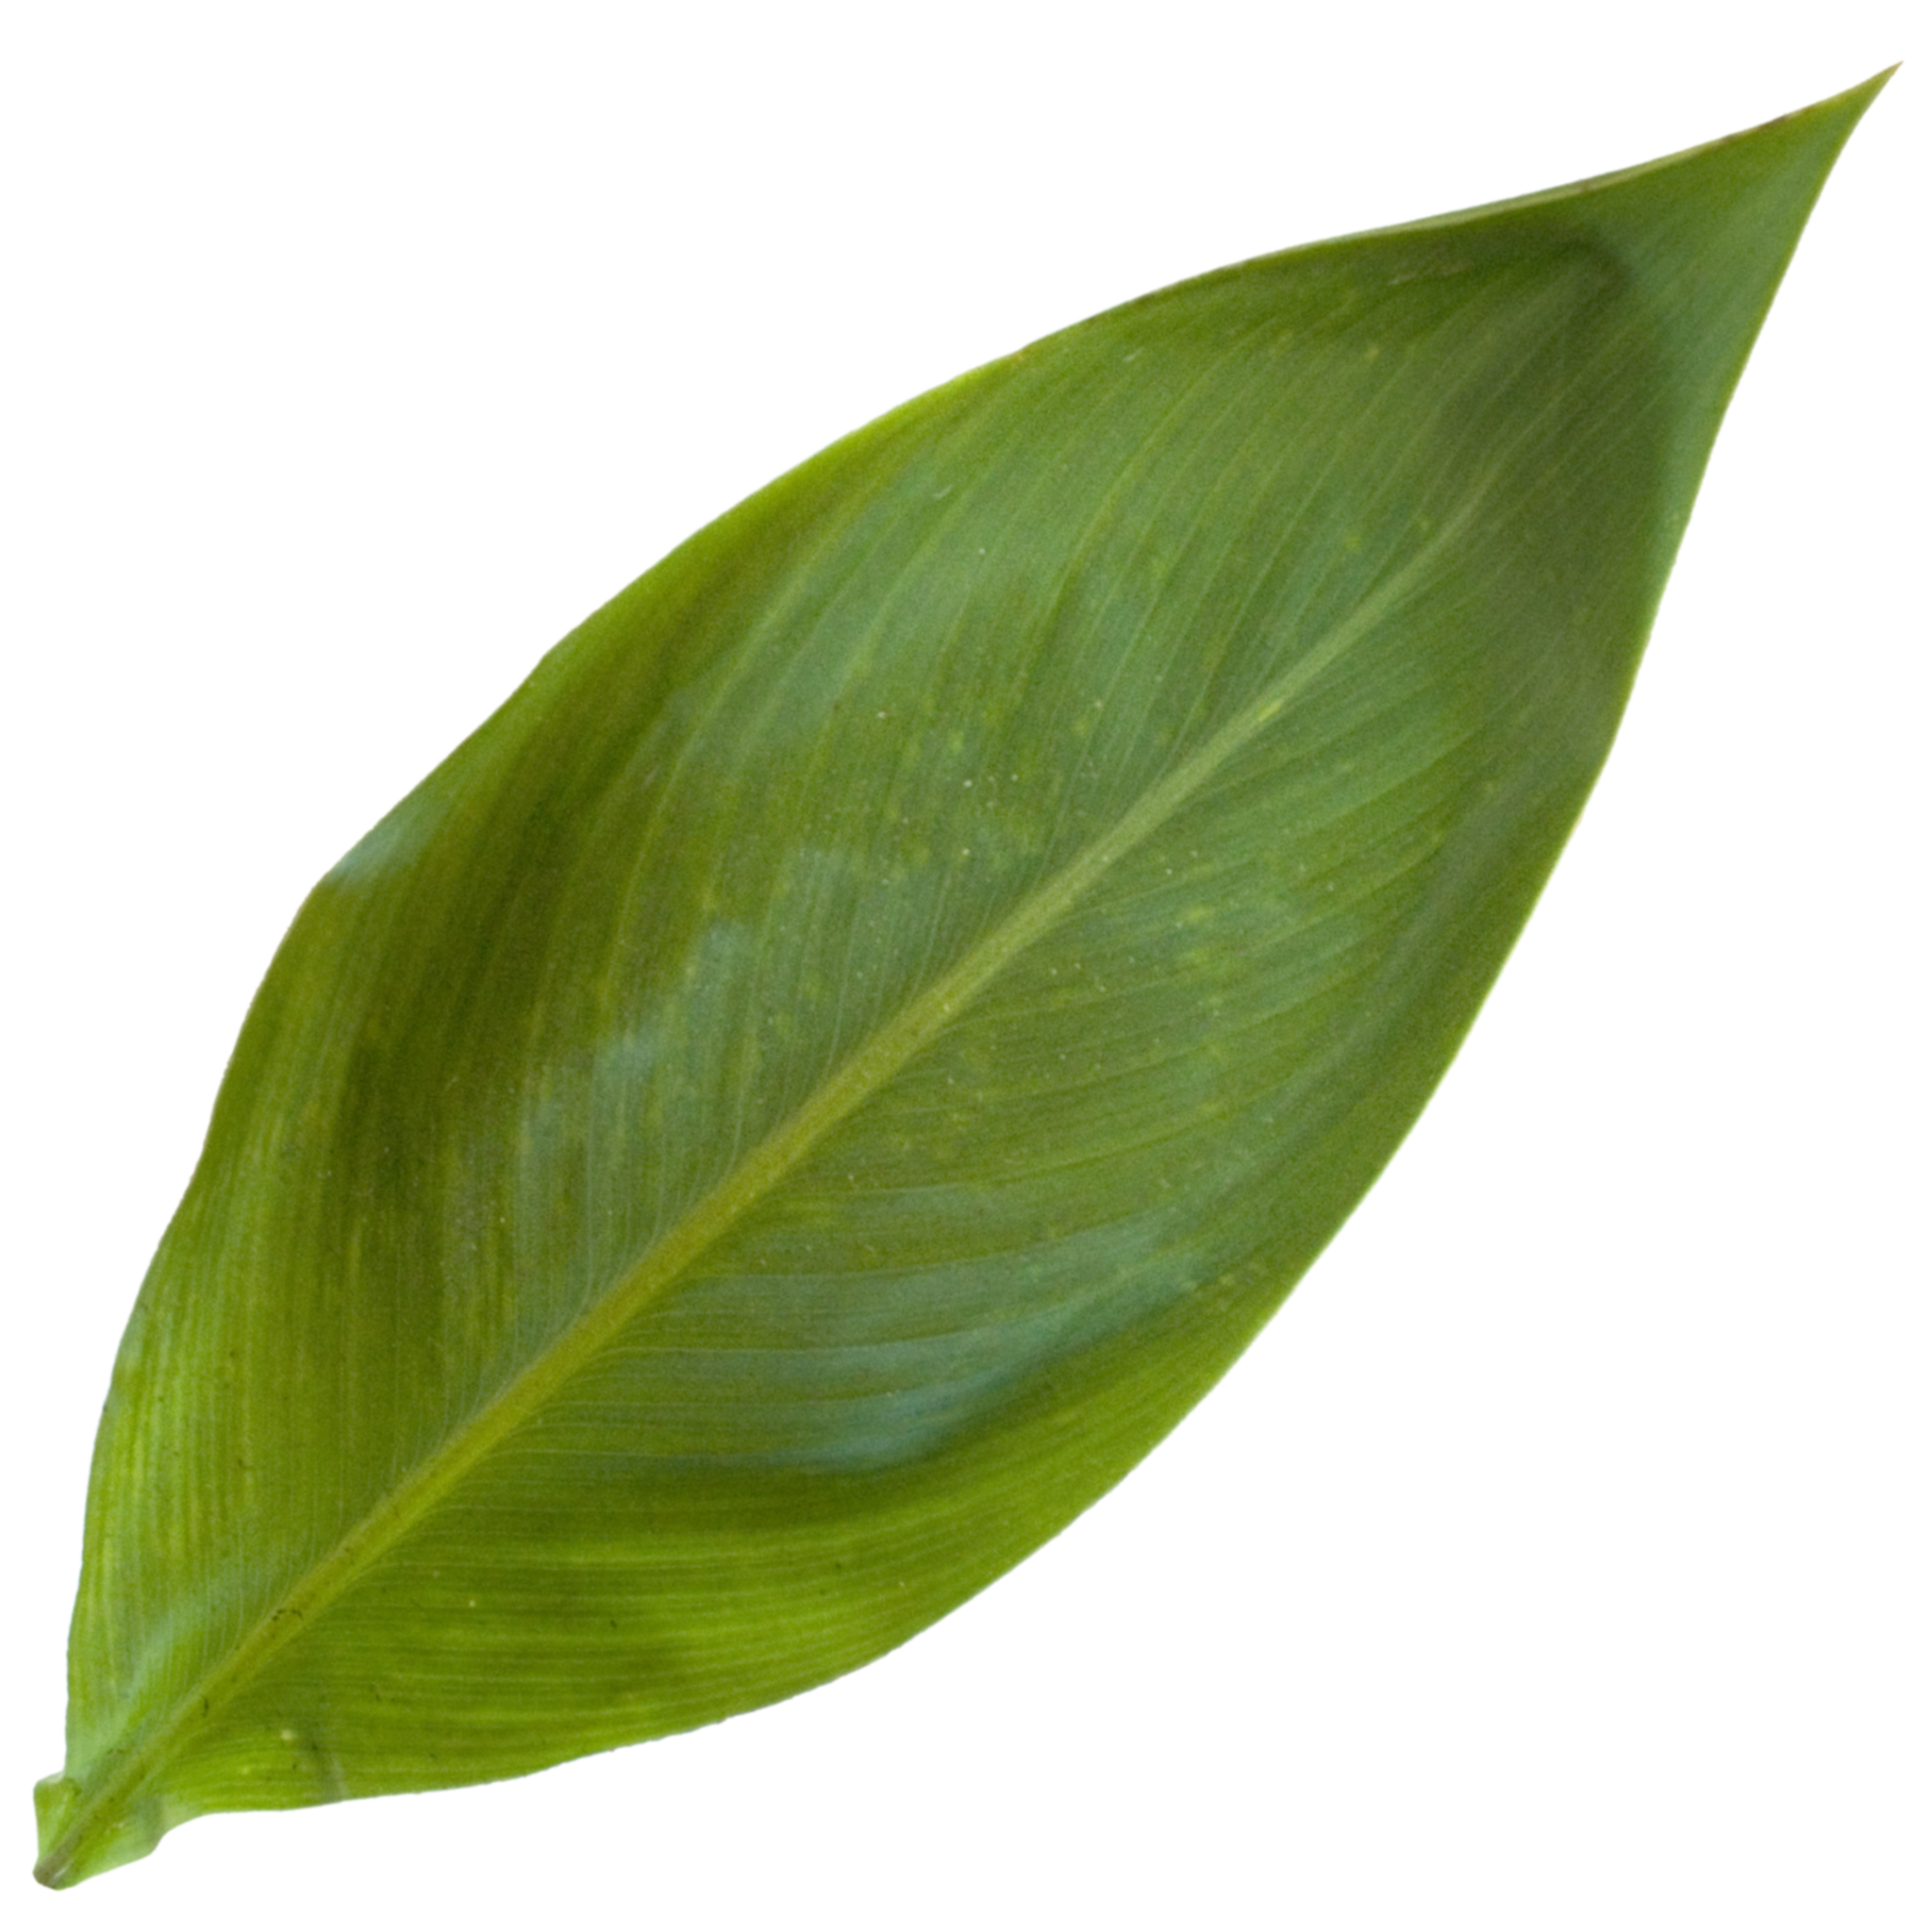 Canna Lilly Leaf.png